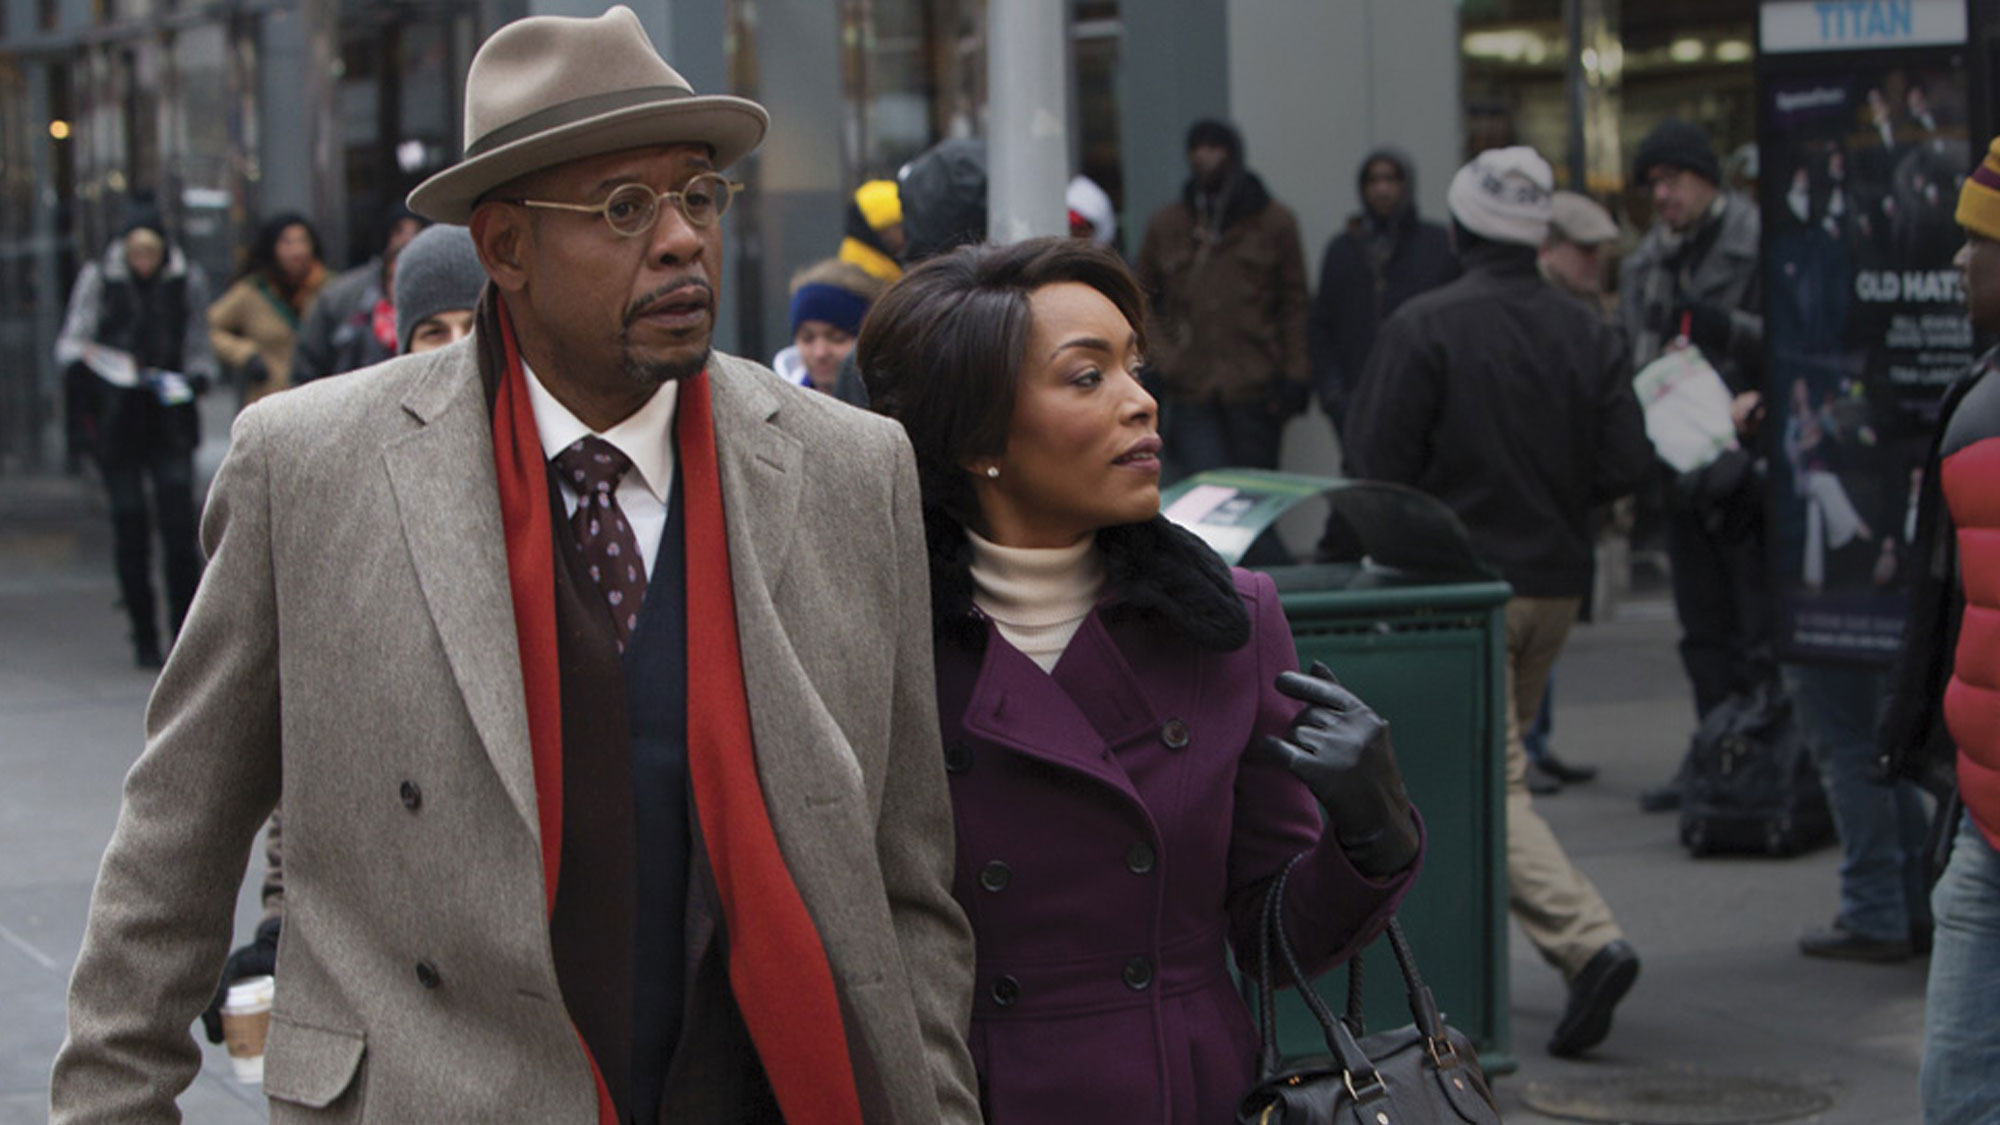 Reaching Out at Christmas with Forest Whitaker and Angela Bassett